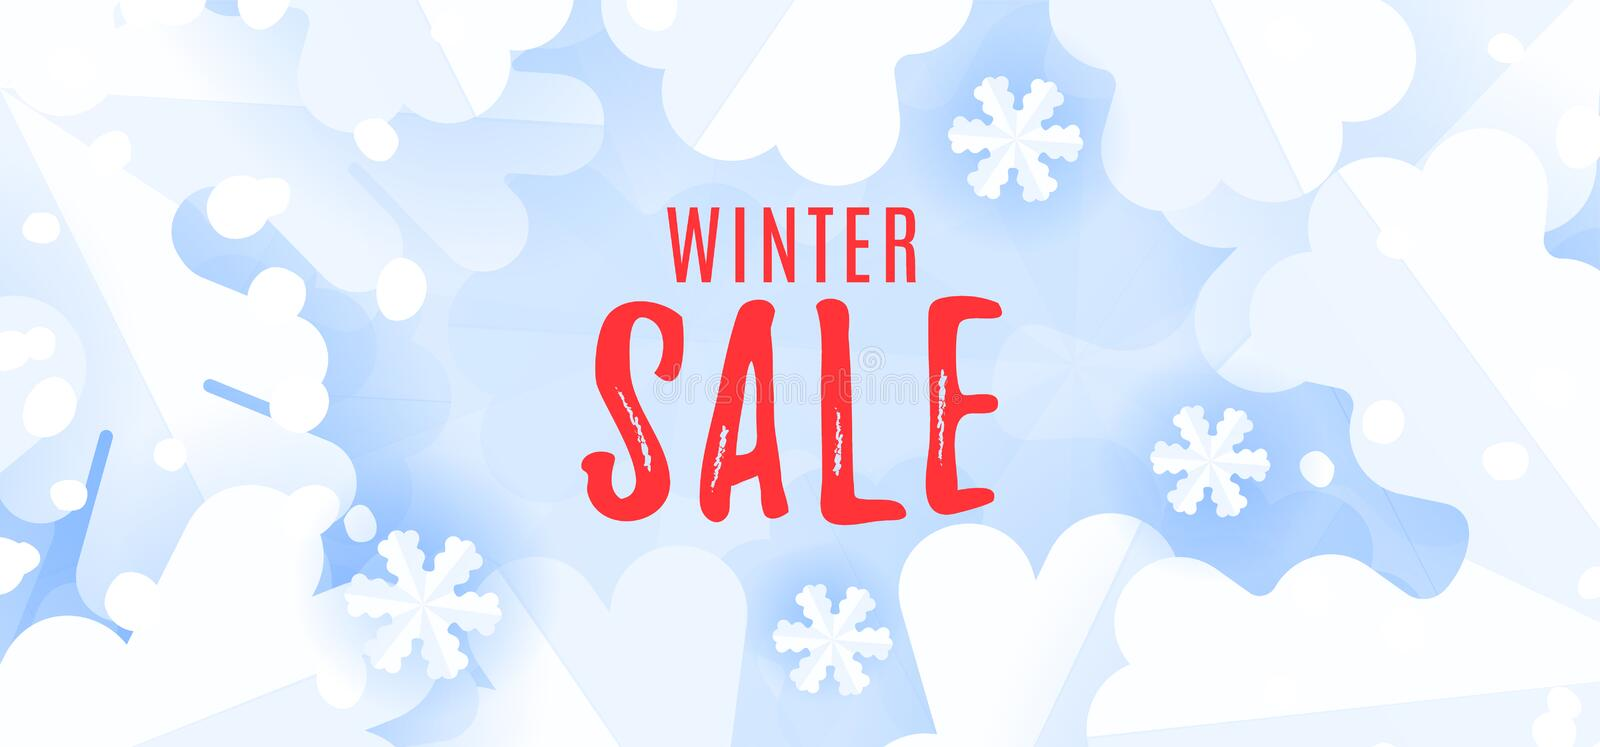 Winter season sale banner template with snowflakes and snow on blue background. Winter season sale banner template with snowflakes and snow on blue background stock illustration